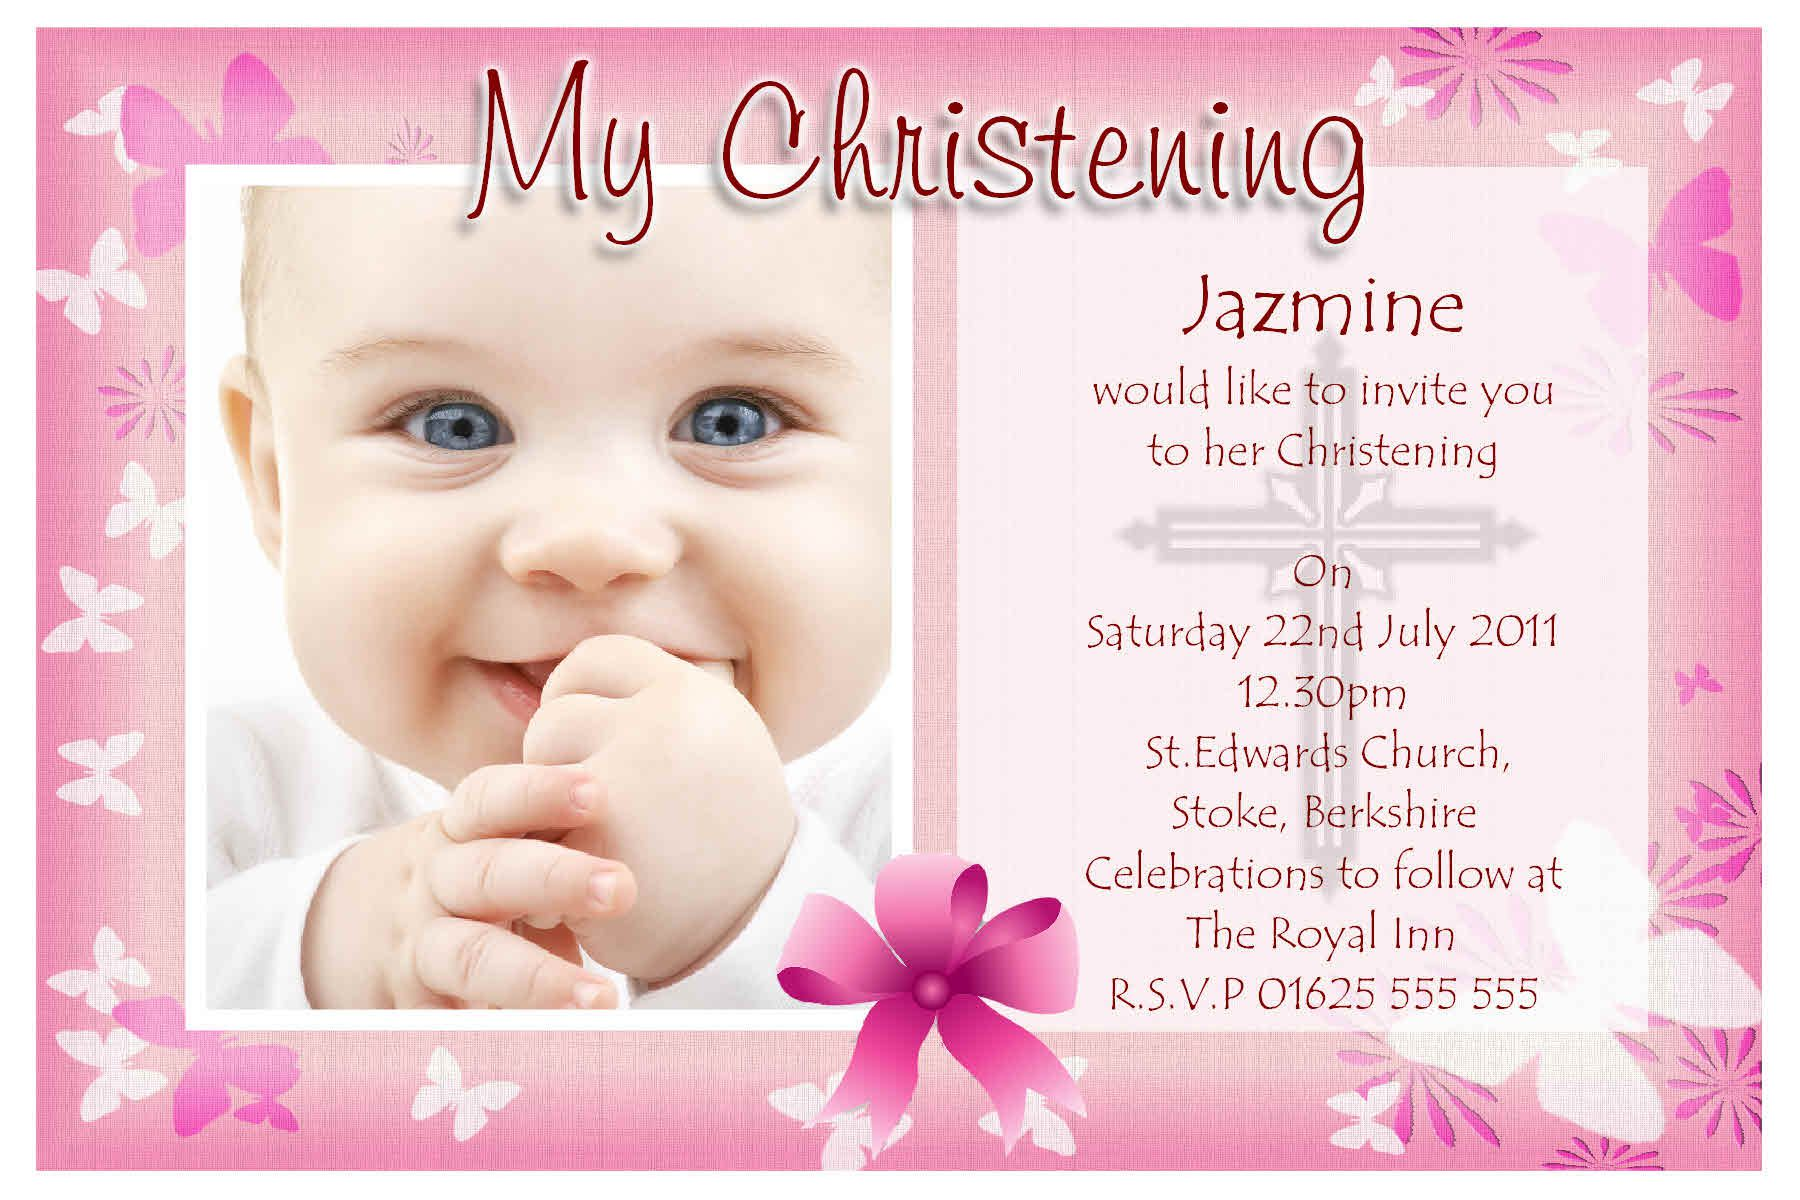 invitation card maker for christening and birthday ; christening-invitation-cards-christening_birthday-invitations-christening-invitation-cards-on-customize-christening-invitation-templates-onli